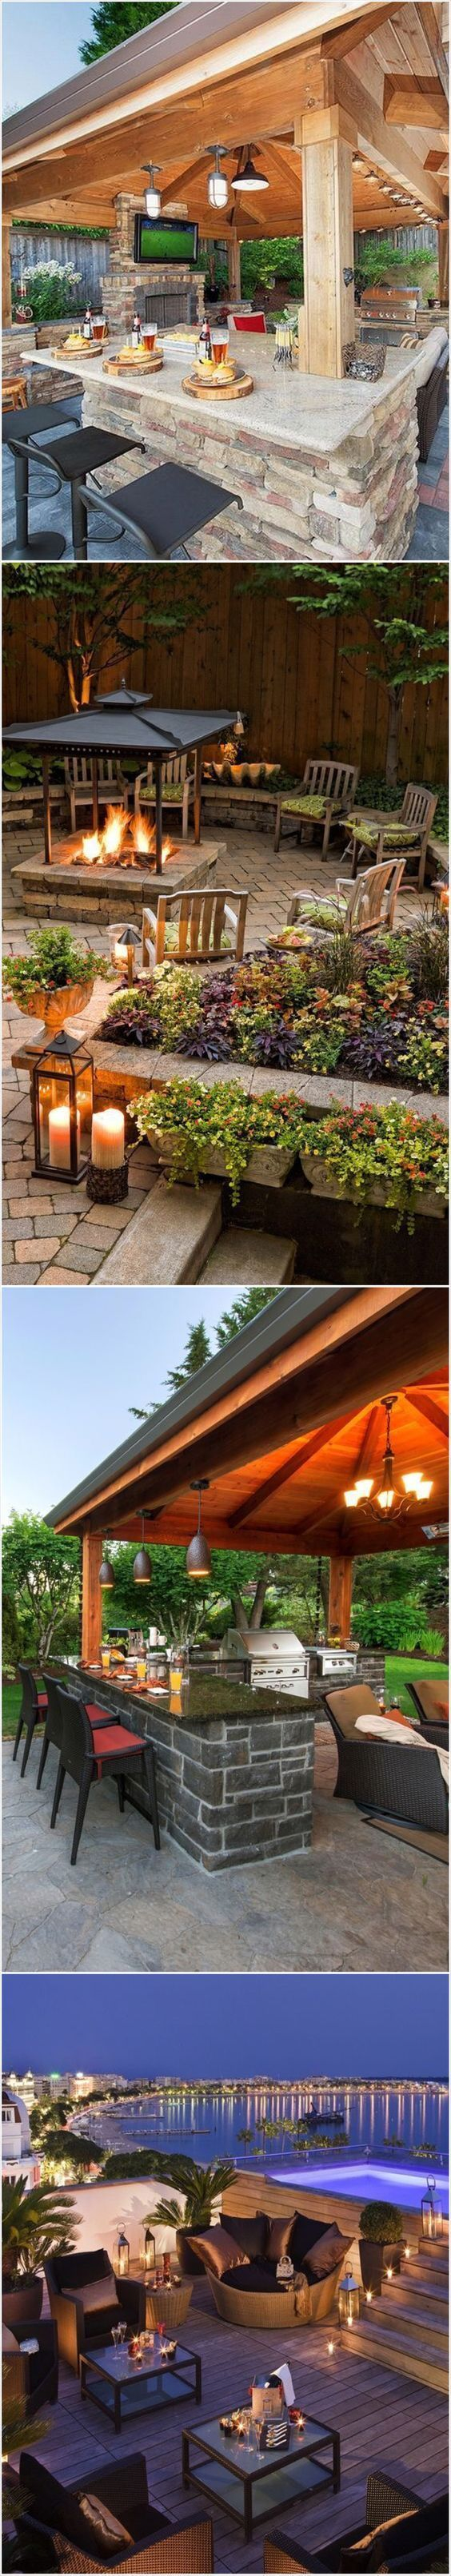 Innovative Outdoor Kitchen Ideas & Design for Your Inspirations Outdoor Kitchen Ideas / Outdoor Living Space / Outdoor Bar Ideas - The roof lines need to extend out over (and past) the seats at the bars! [Amazing Outdoor Living Spaces]Outdoor Kitchen Ideas / Outdoor Living Space / Outdoor Bar Ideas - The roof lines need to extend out over (and past) the seats at ...